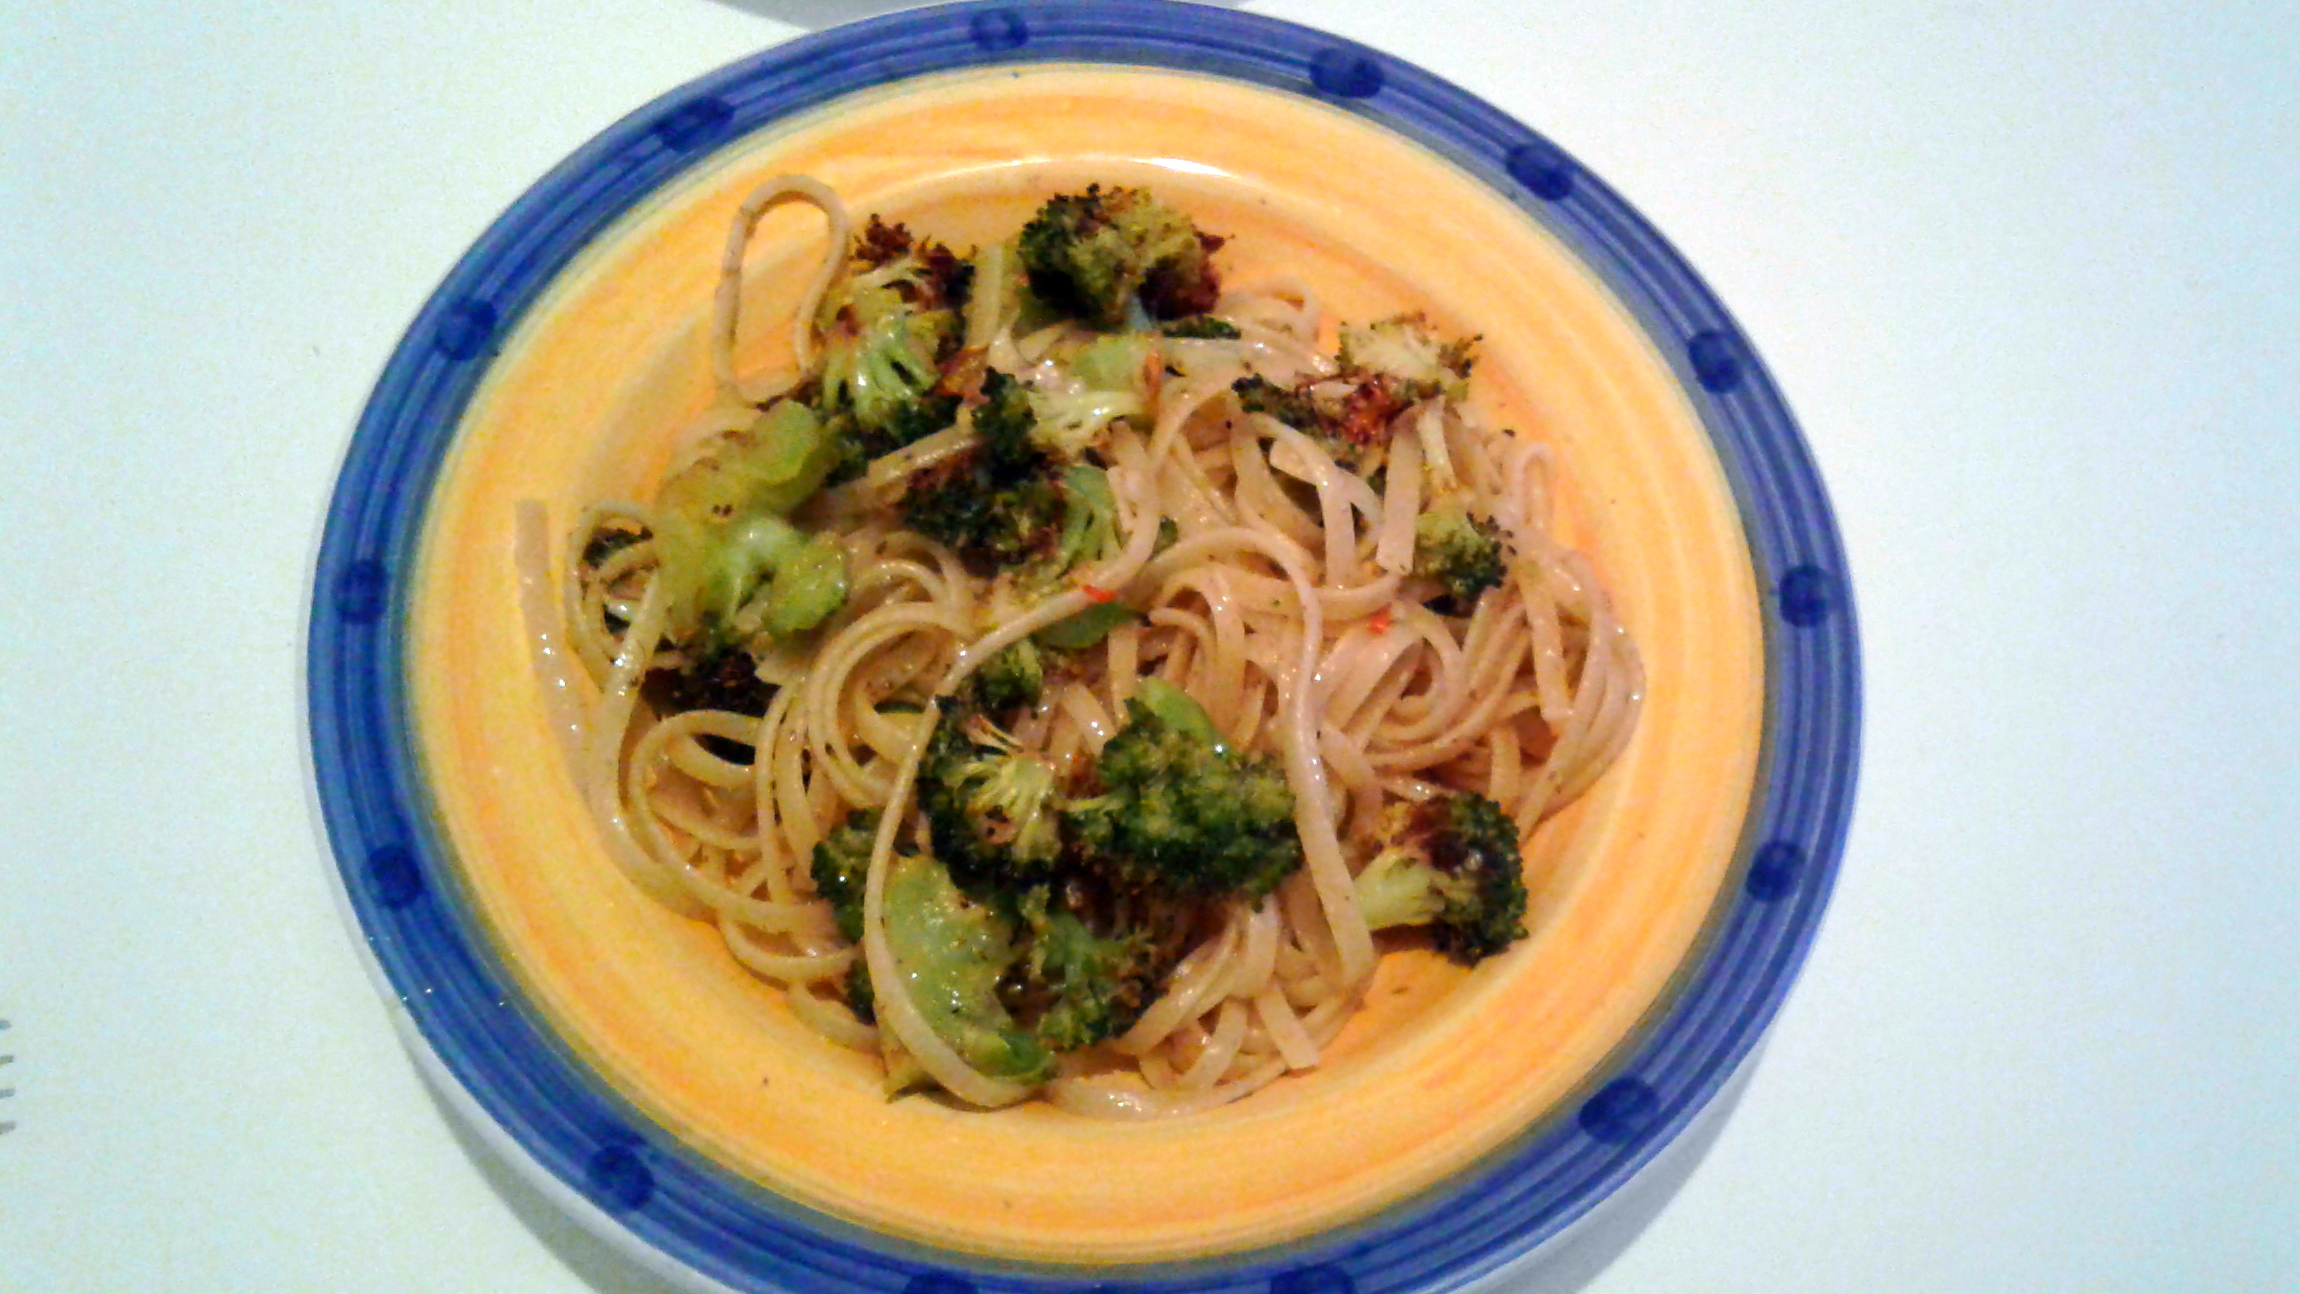 Spicy Pasta with Broccoli, Anchovy, and Garlic